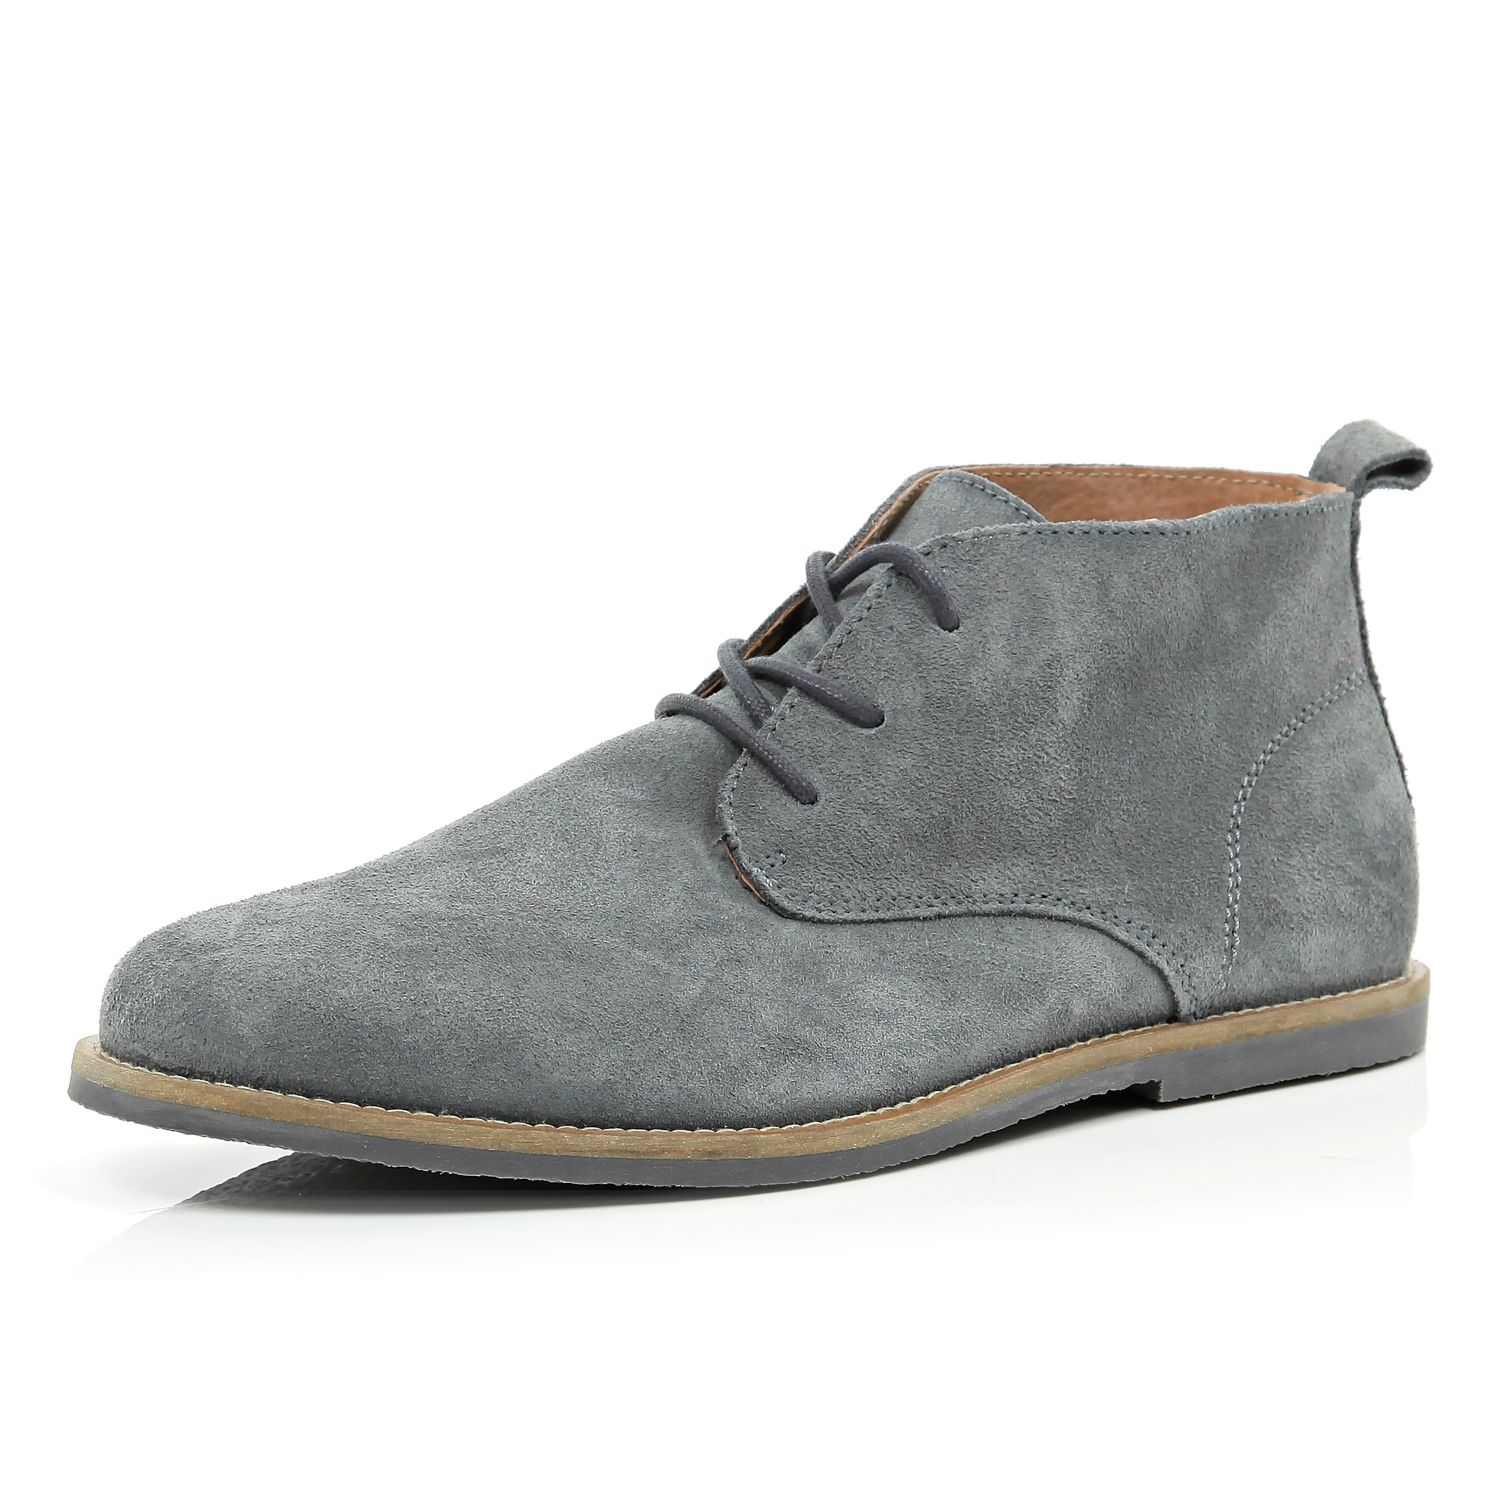 Grey Boots Mens - Boot Hto